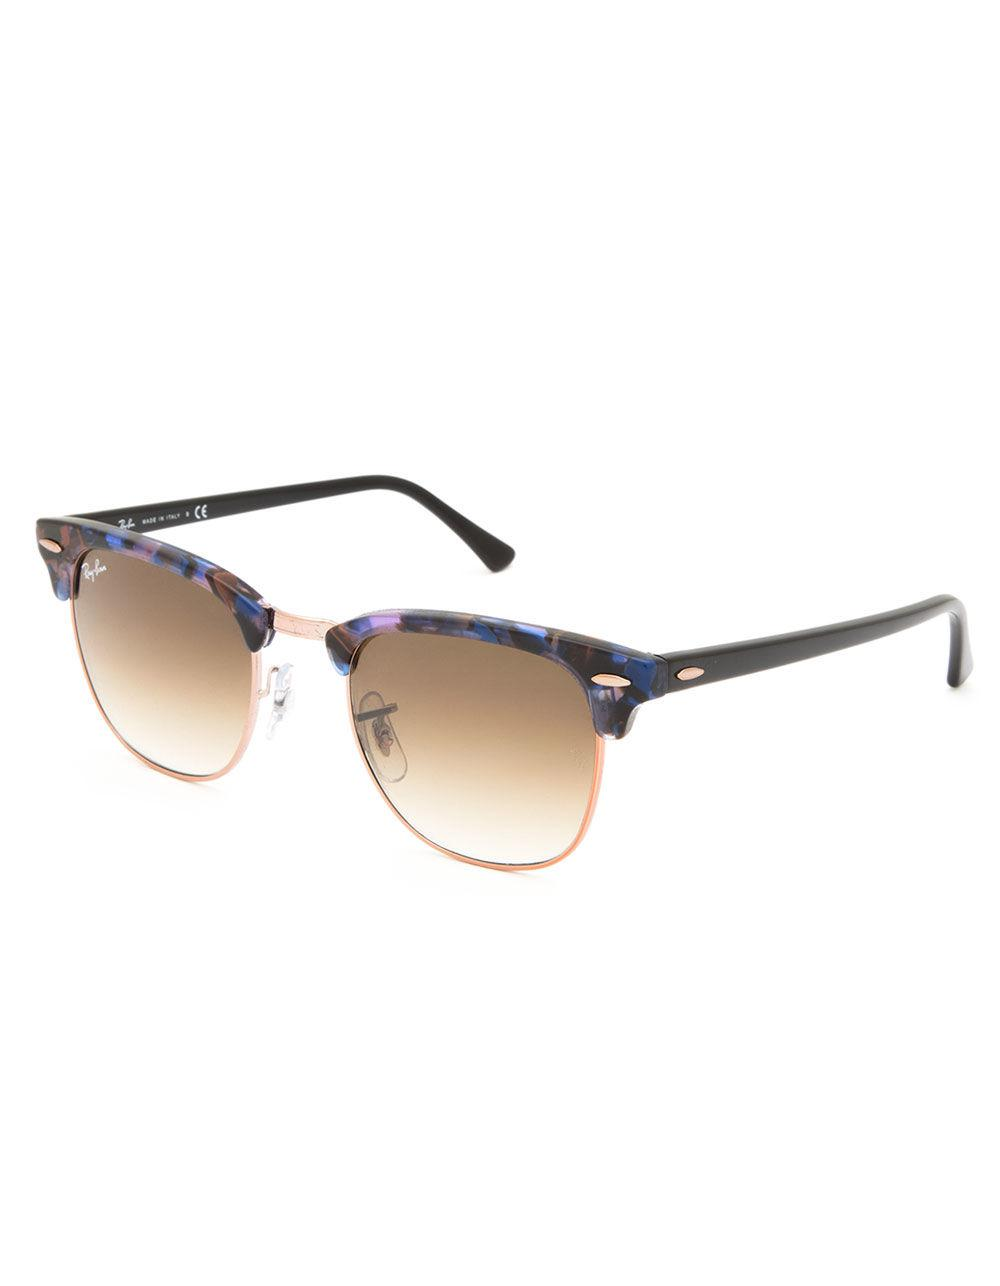 7a5c121a0b Lyst - Ray-Ban Clubmaster Fleck Spotted Brown   Blue Sunglasses in Brown